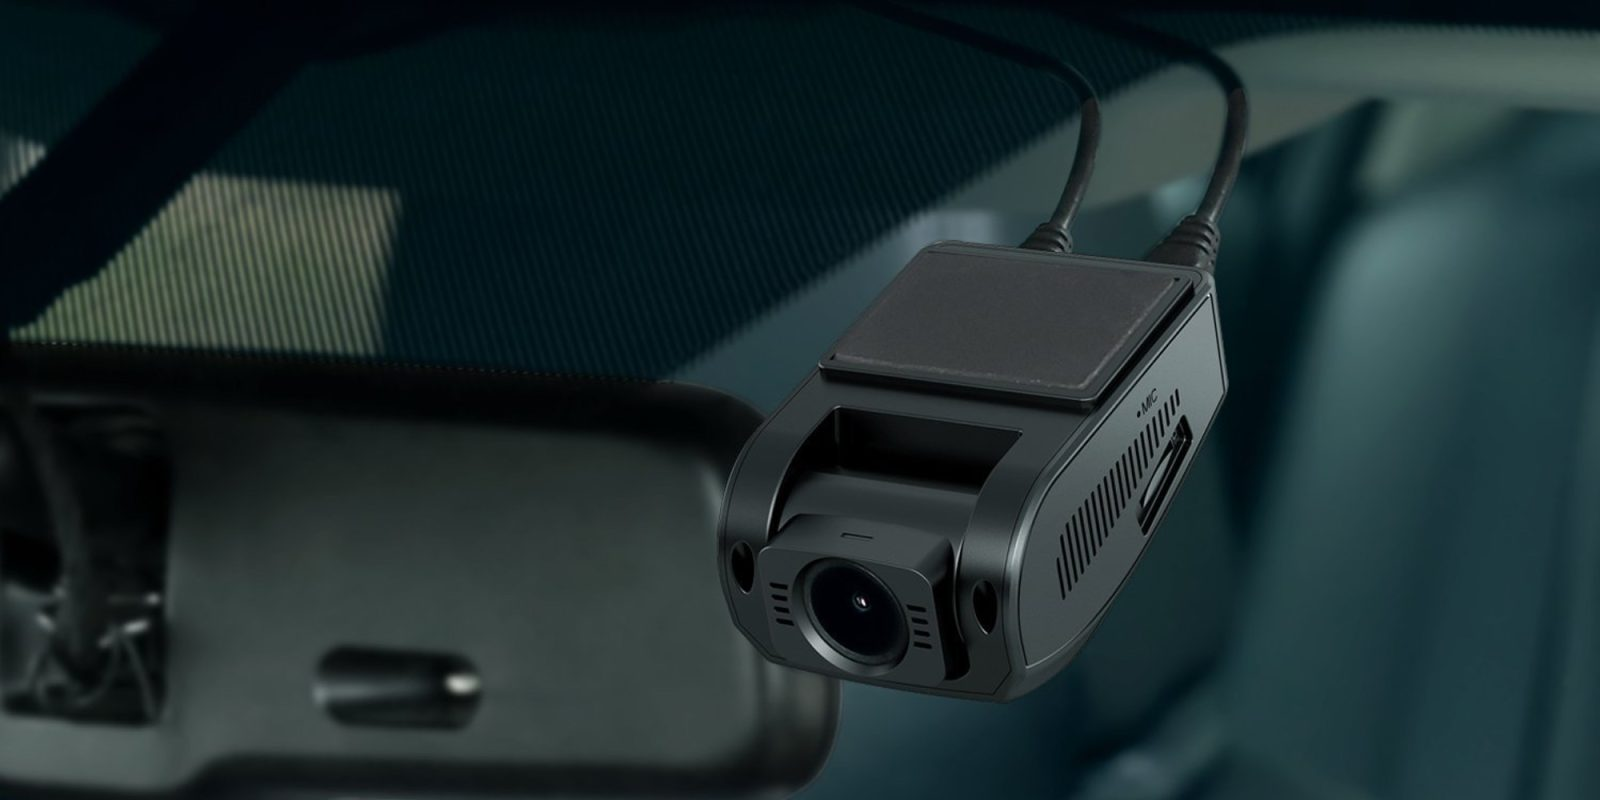 Aukey's 1080p Dash Cam has a Wide-Angle Lens and is down to $50 at Amazon, more